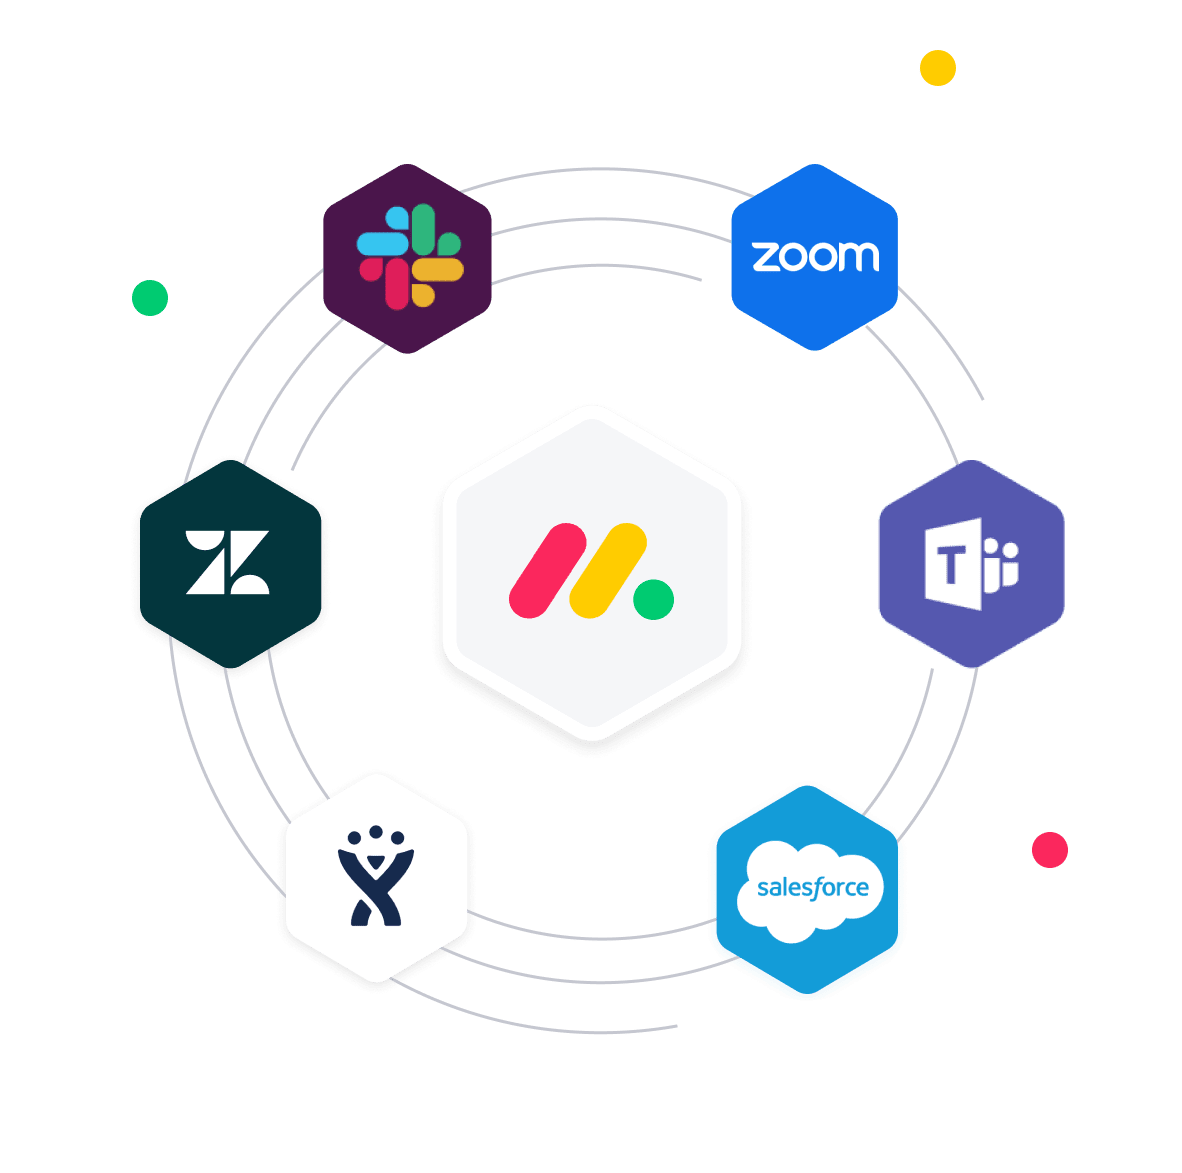 Example of monday.com's tech partners including Slack, Zendesk, Salesforce and Microsoft Teams